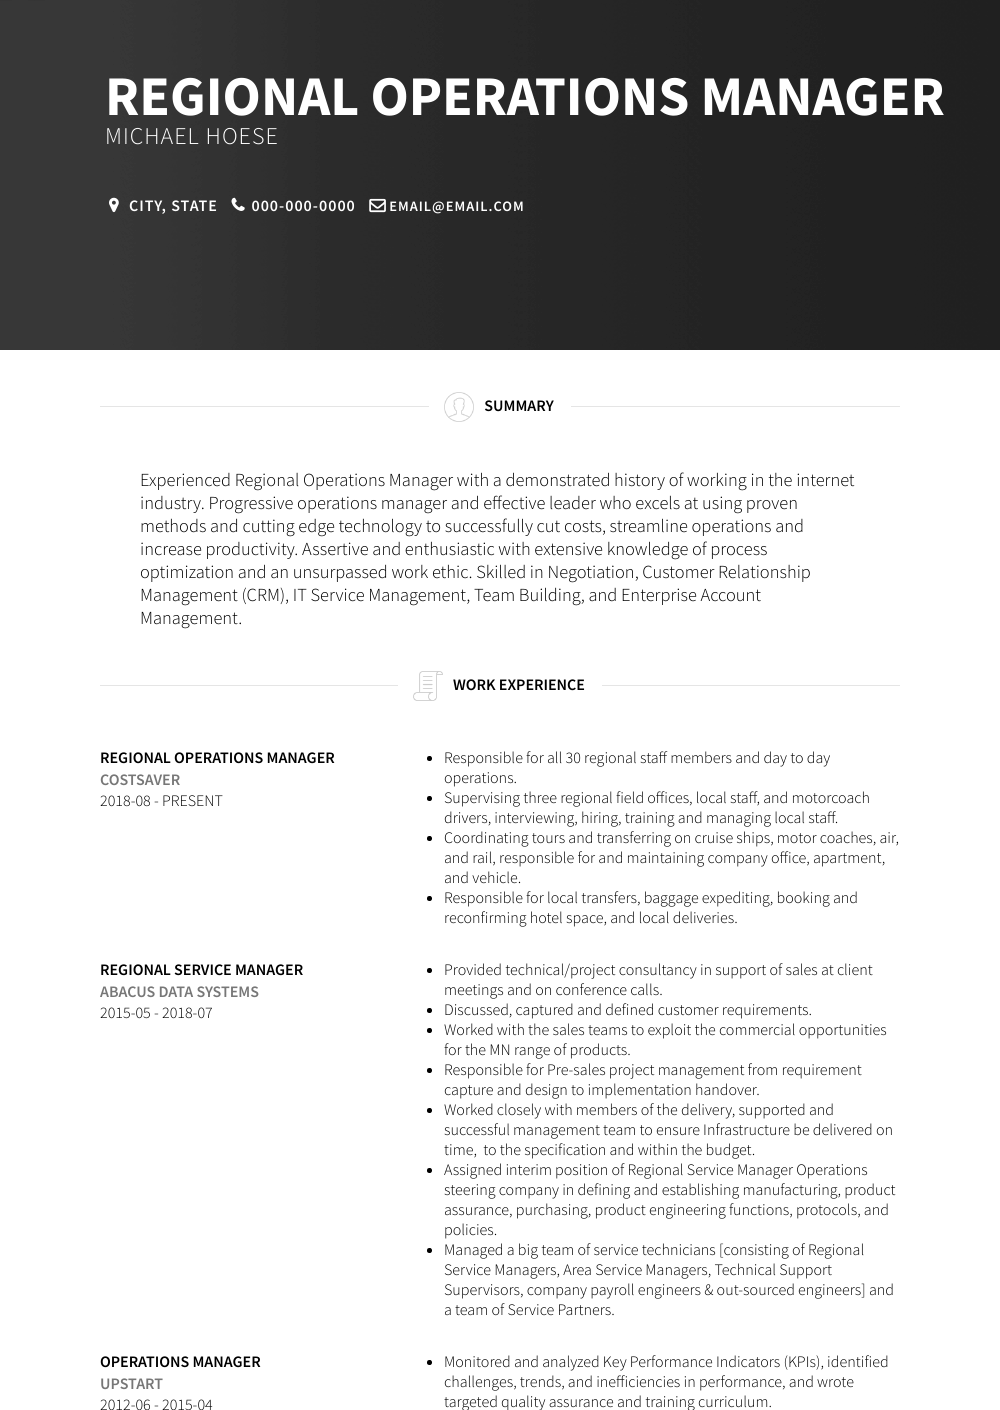 Regional Operations Manager Resume Sample and Template